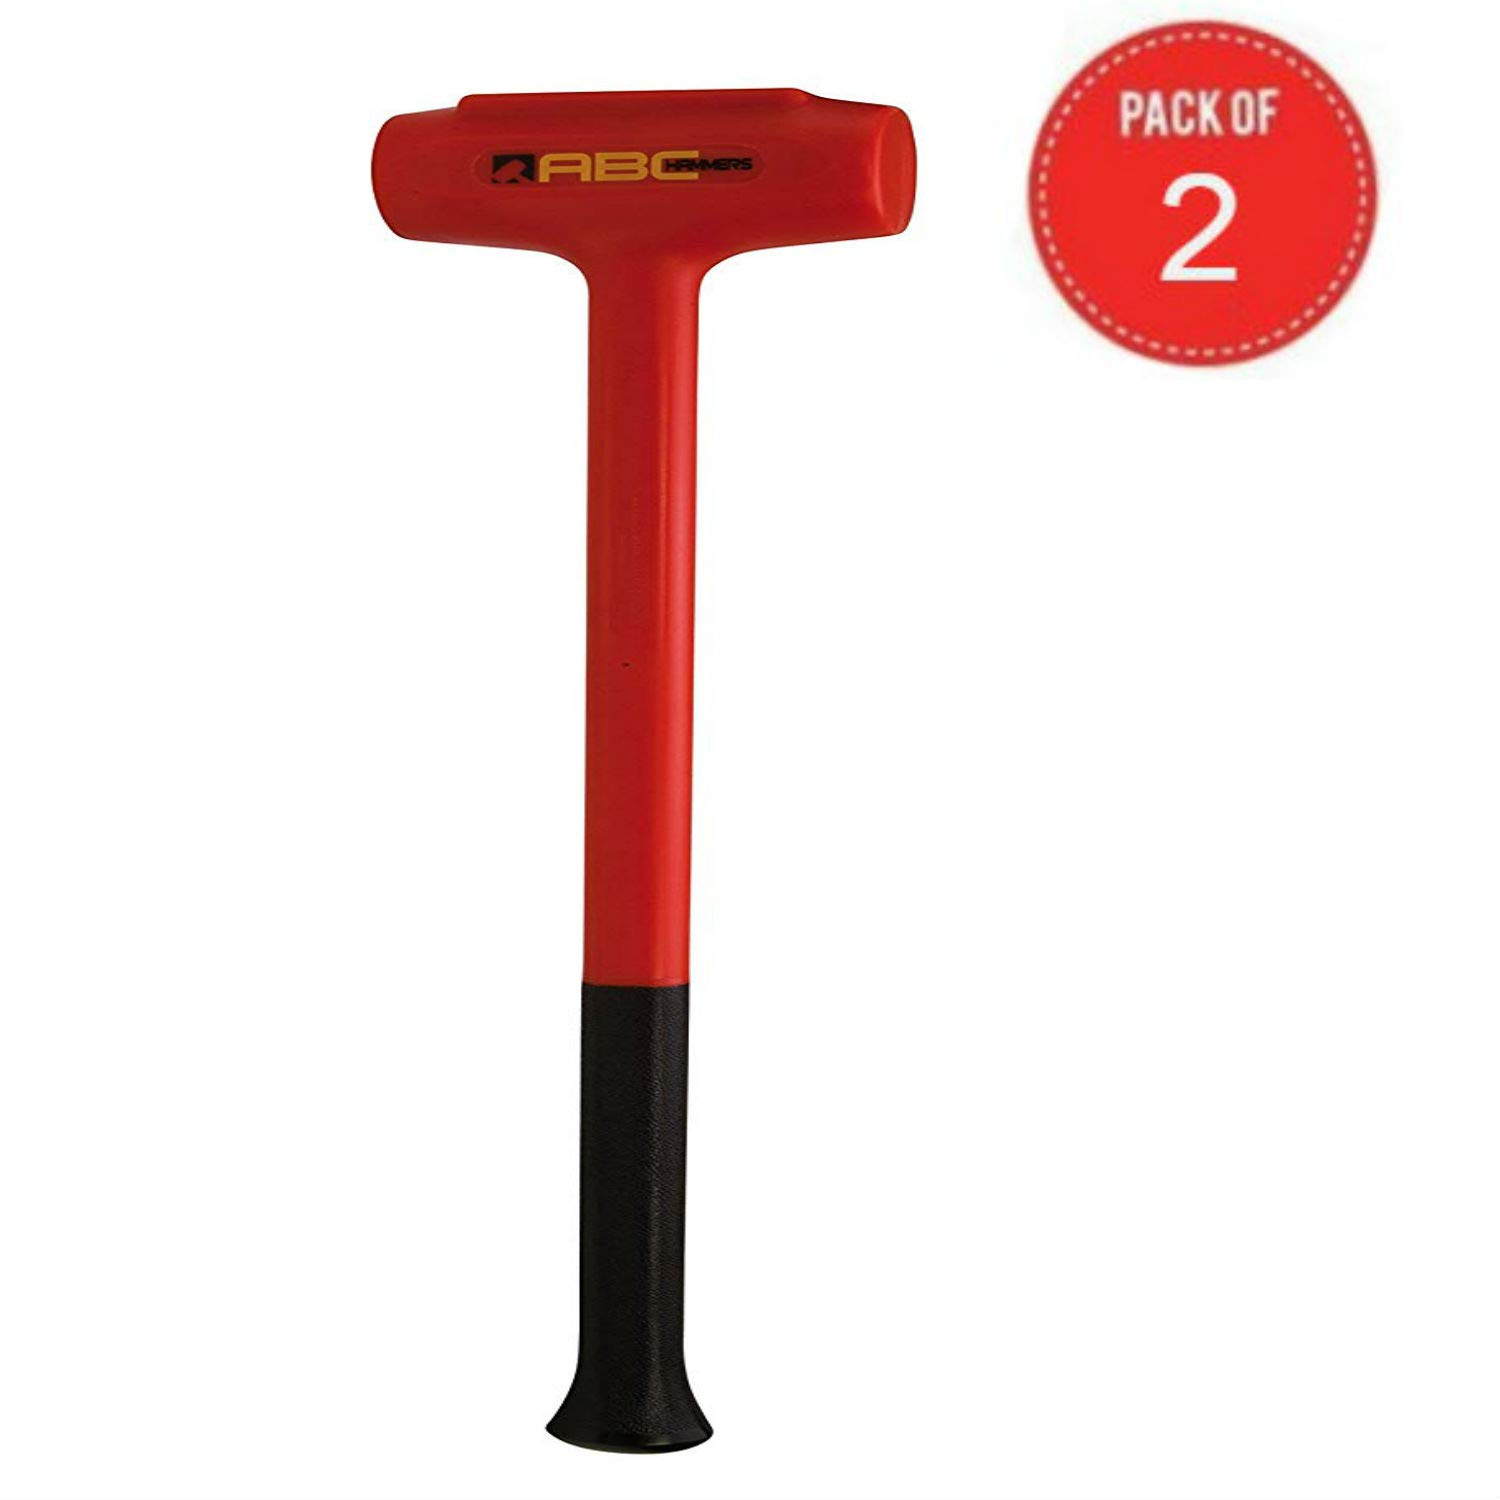 ABC Hammers Polyurethane Dead Blow Hammer (9-Pound Pack of 2)